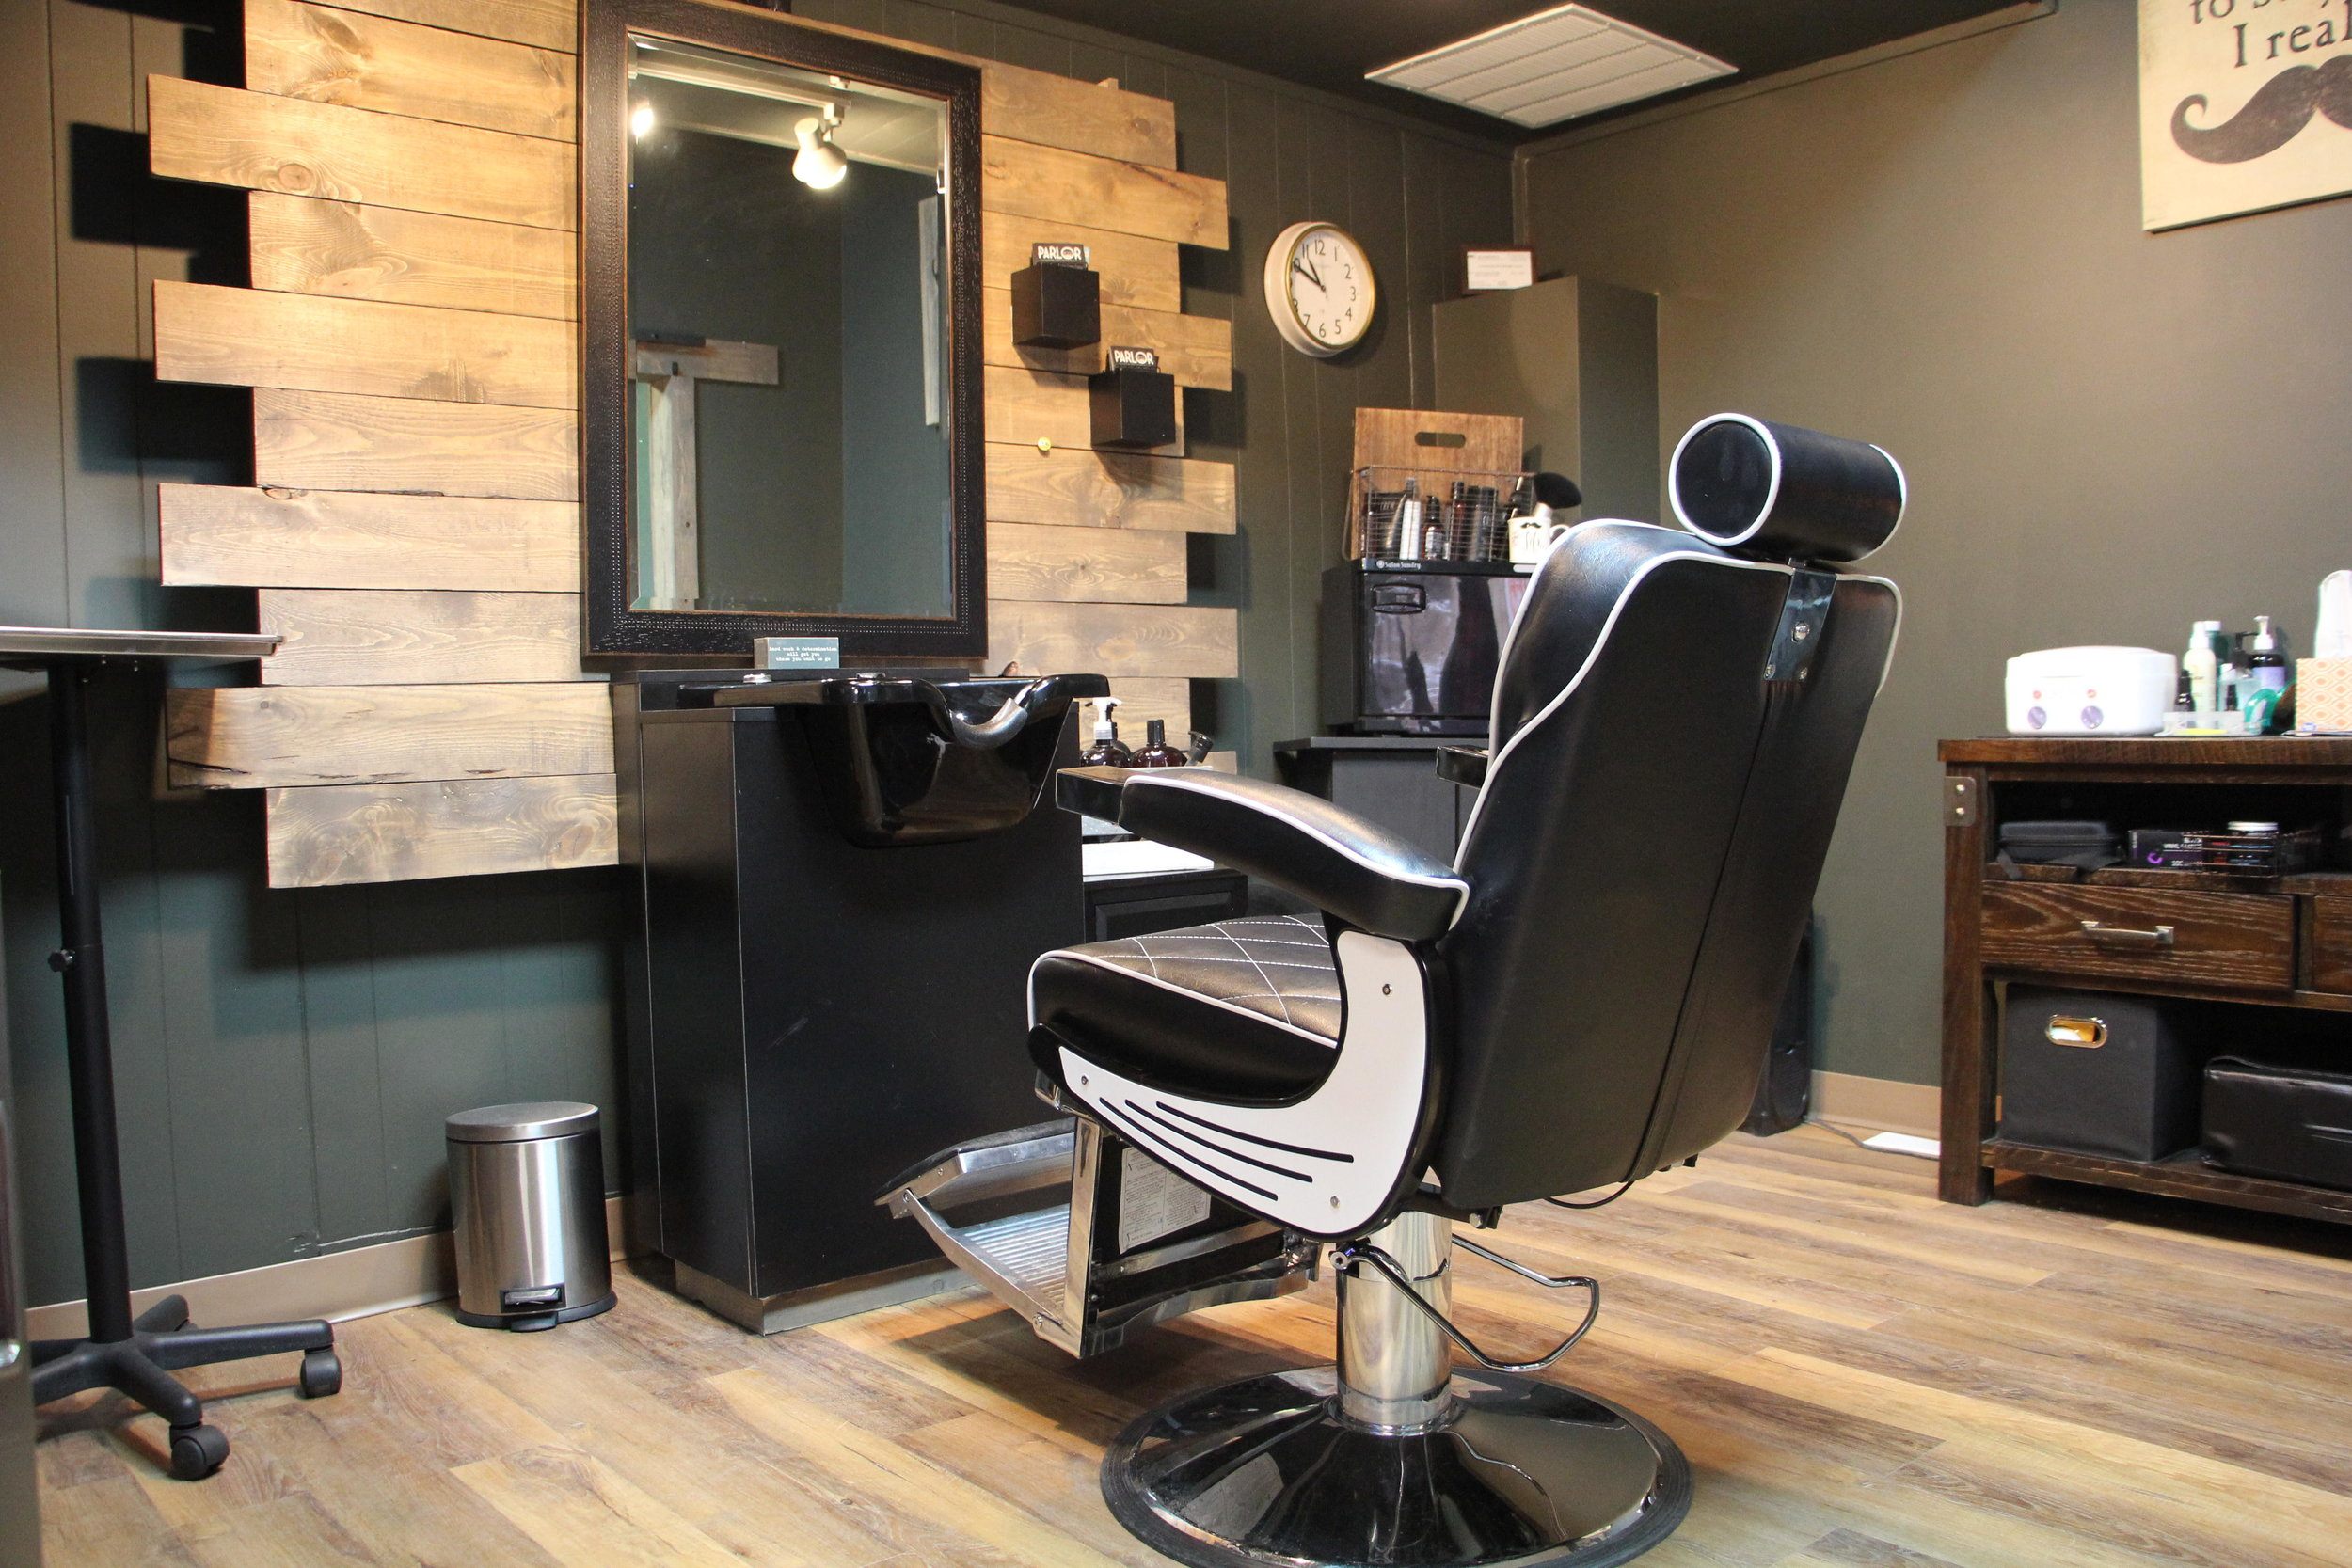 Parlor 102 has a three-room design, so clients can have their own space when getting a cut or style. Kaysey Price / Tribune